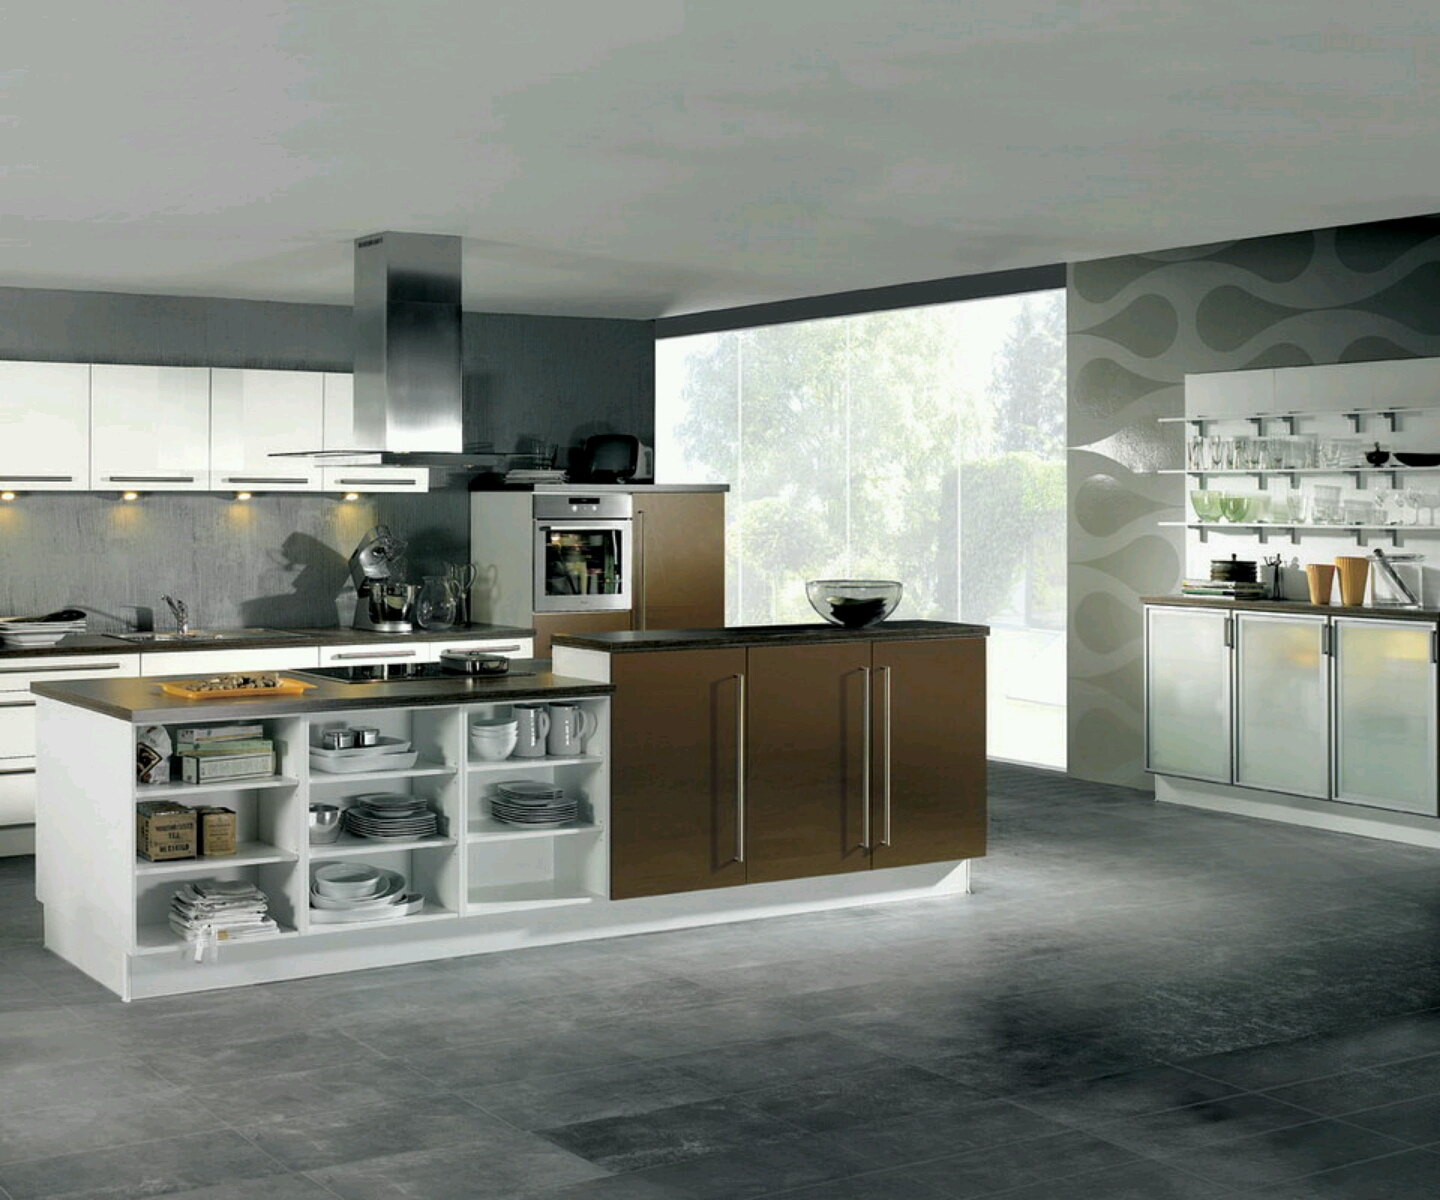 New home designs latest ultra modern kitchen designs ideas for Modern kitchen gallery